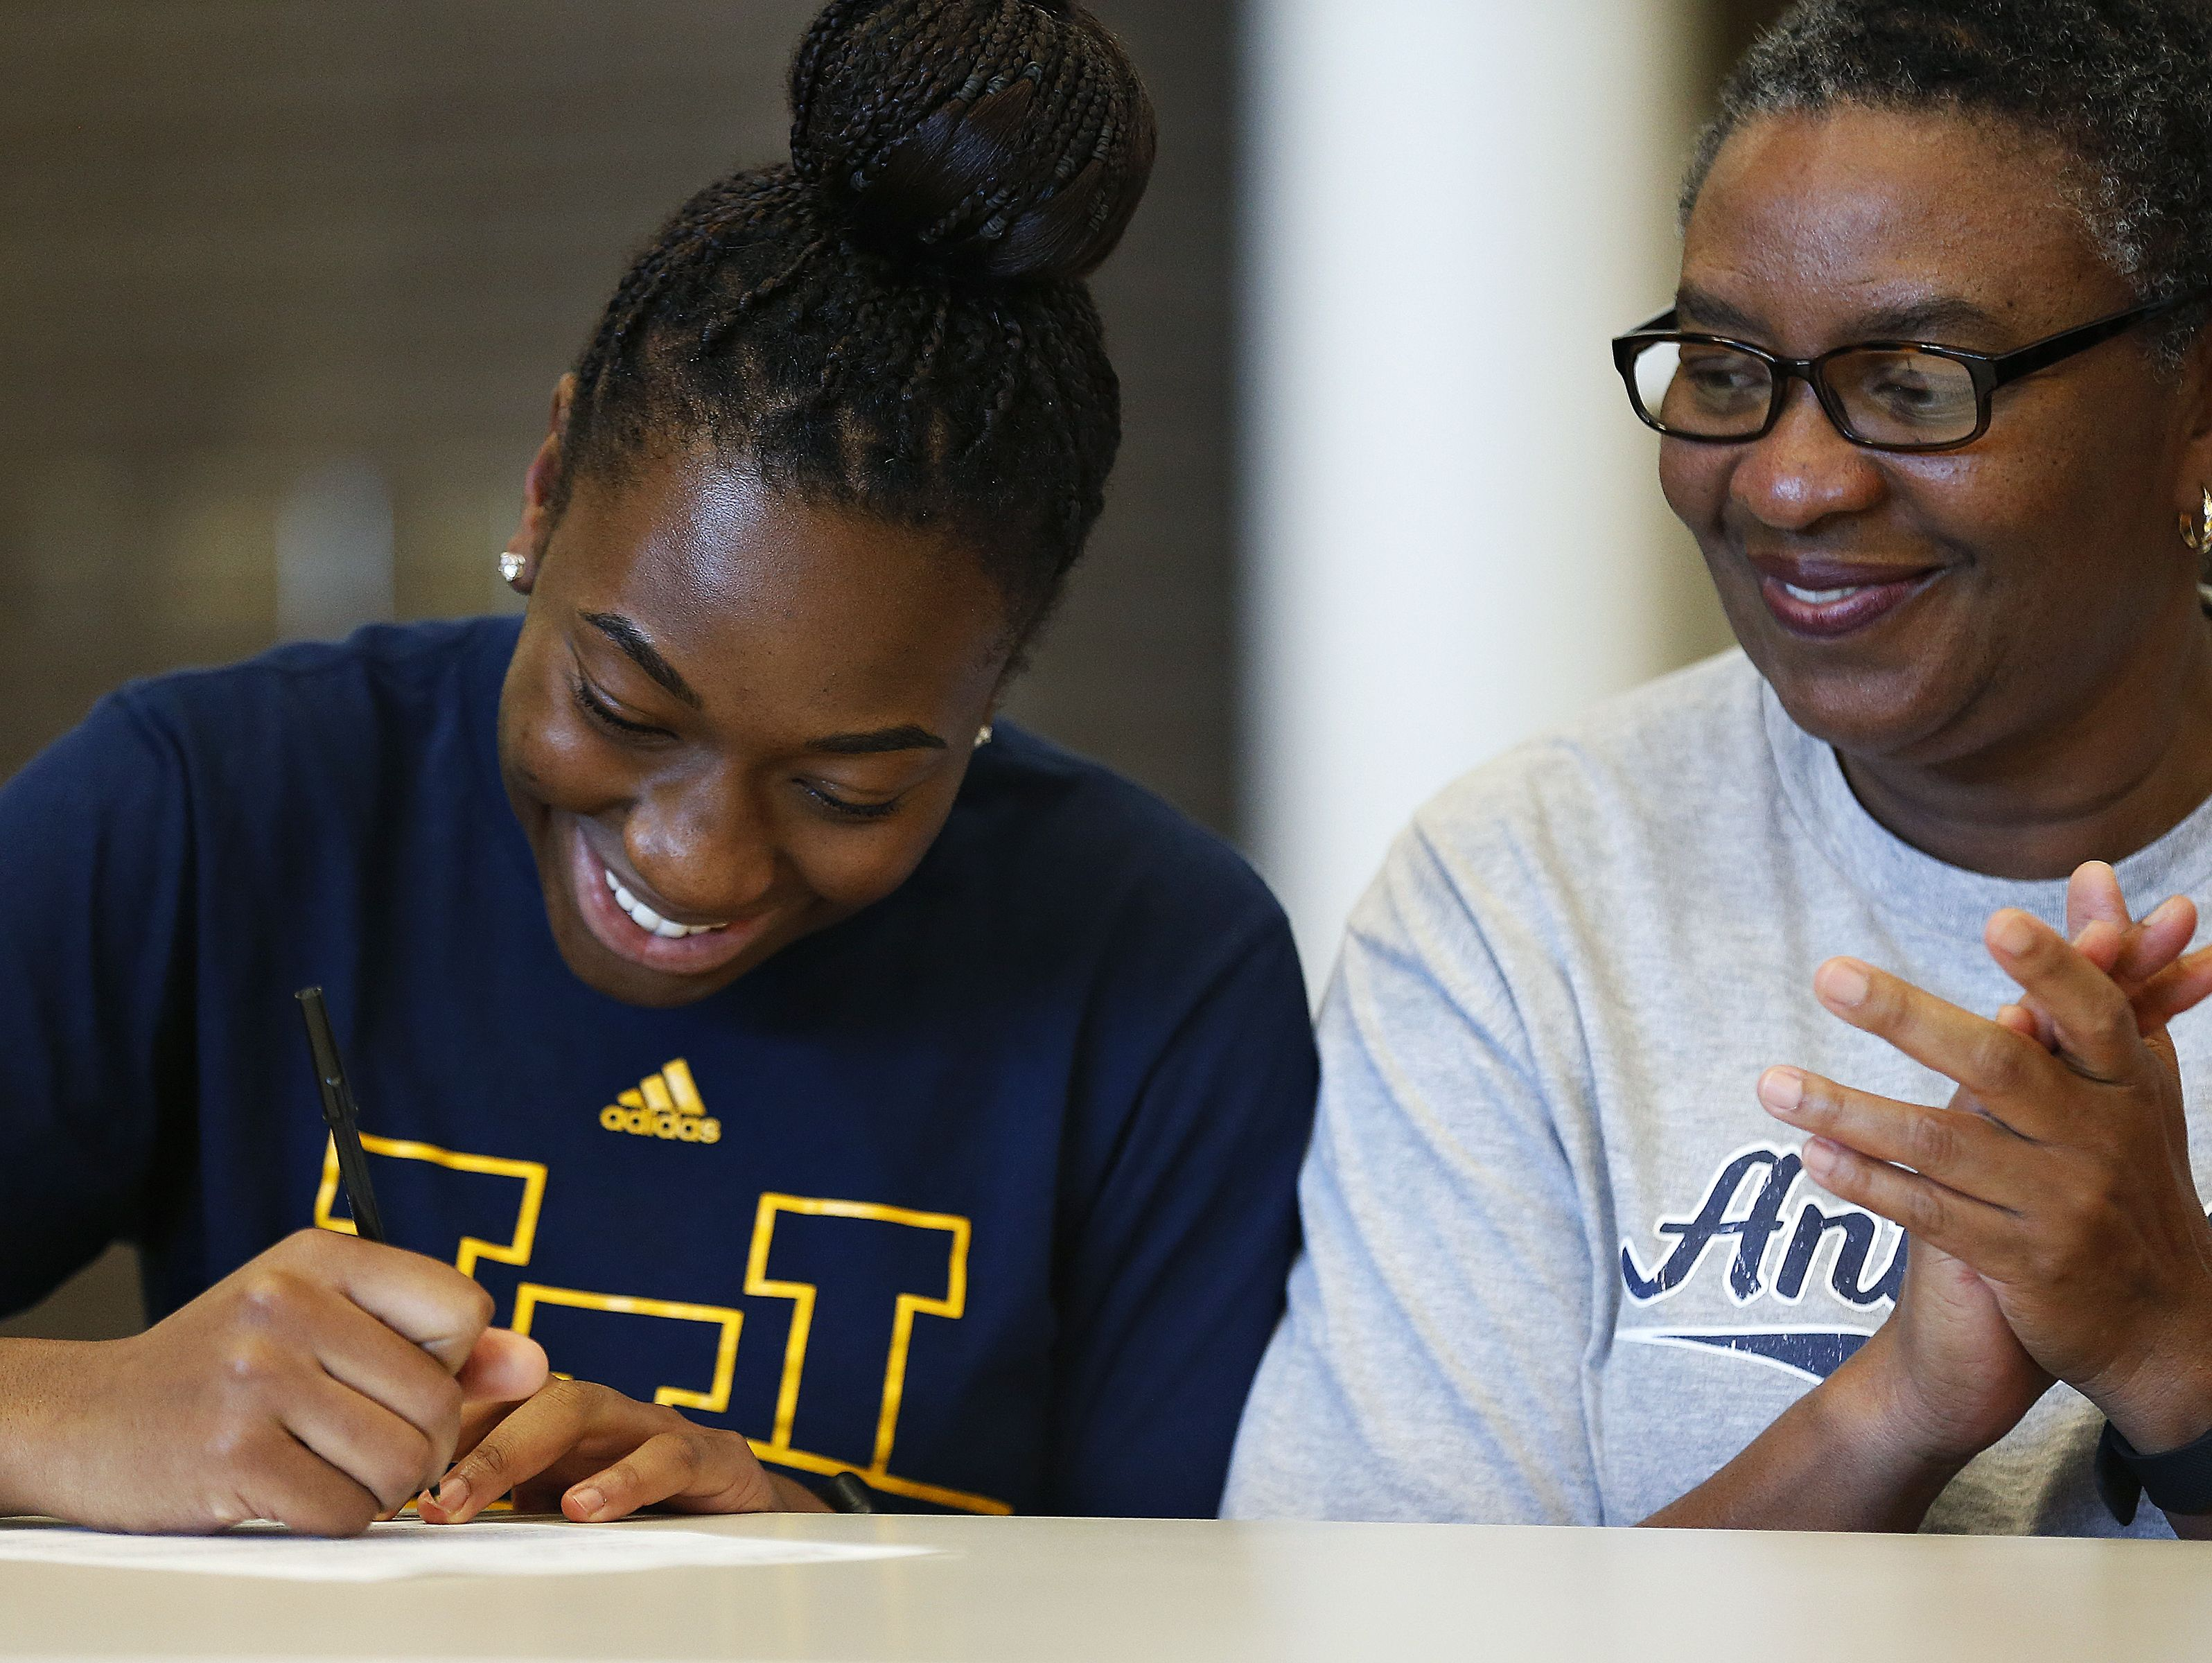 Jordan Sanders (left) signs a national letter of intent to the University of California-Irvine during a National Signing Day event held for Chiefs athletes at Kickapoo High School in Springfield, Mo. on Nov. 9, 2016.